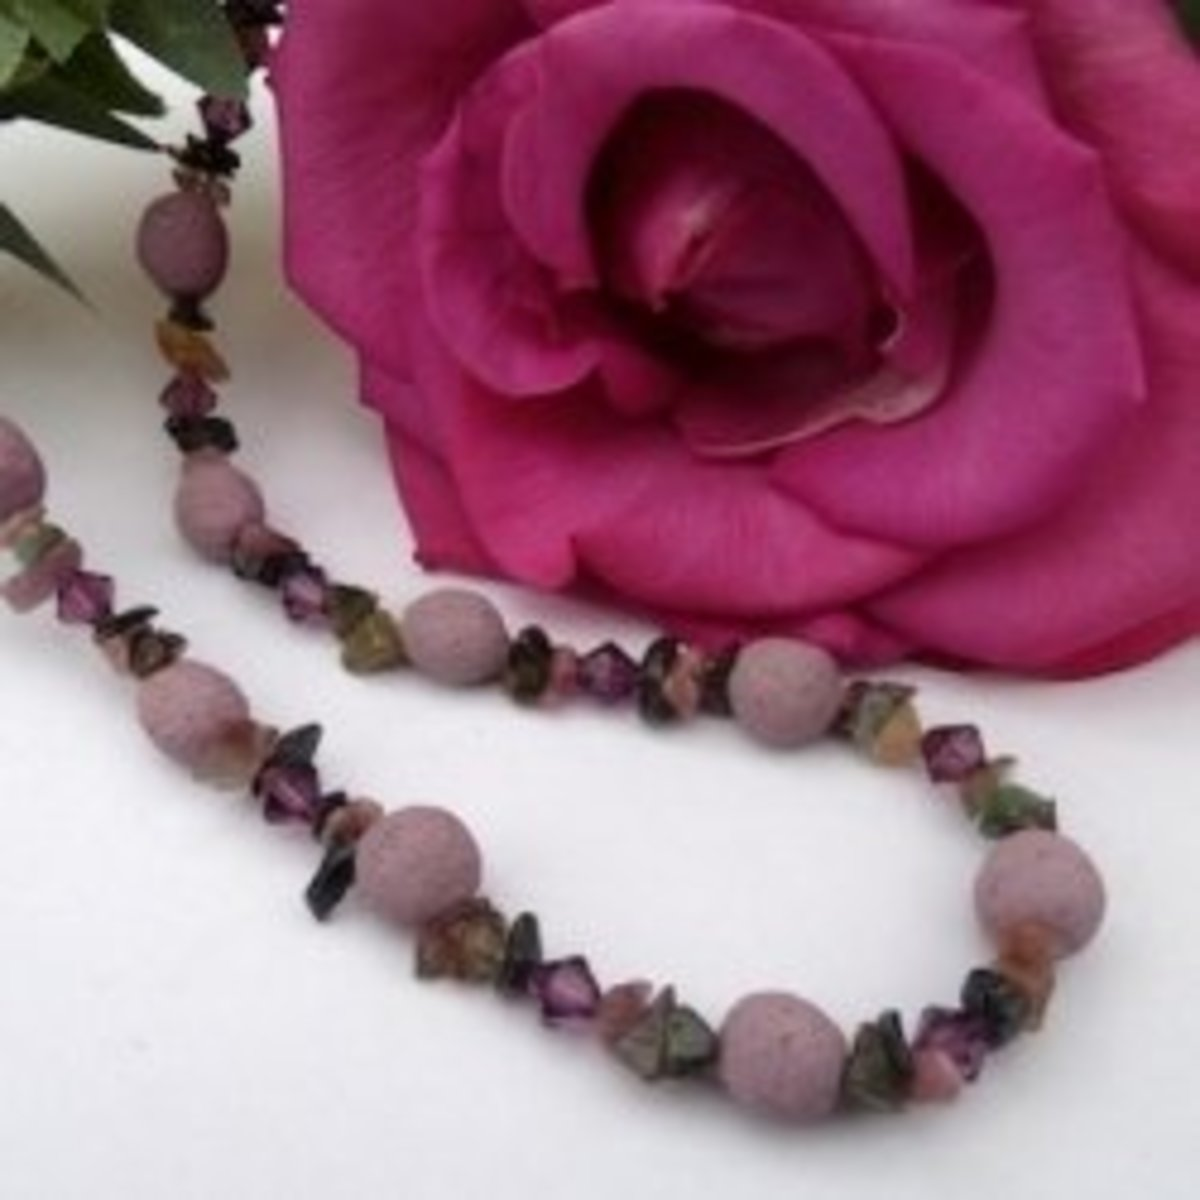 How to Make Rose Beads From Your Wedding Flowers